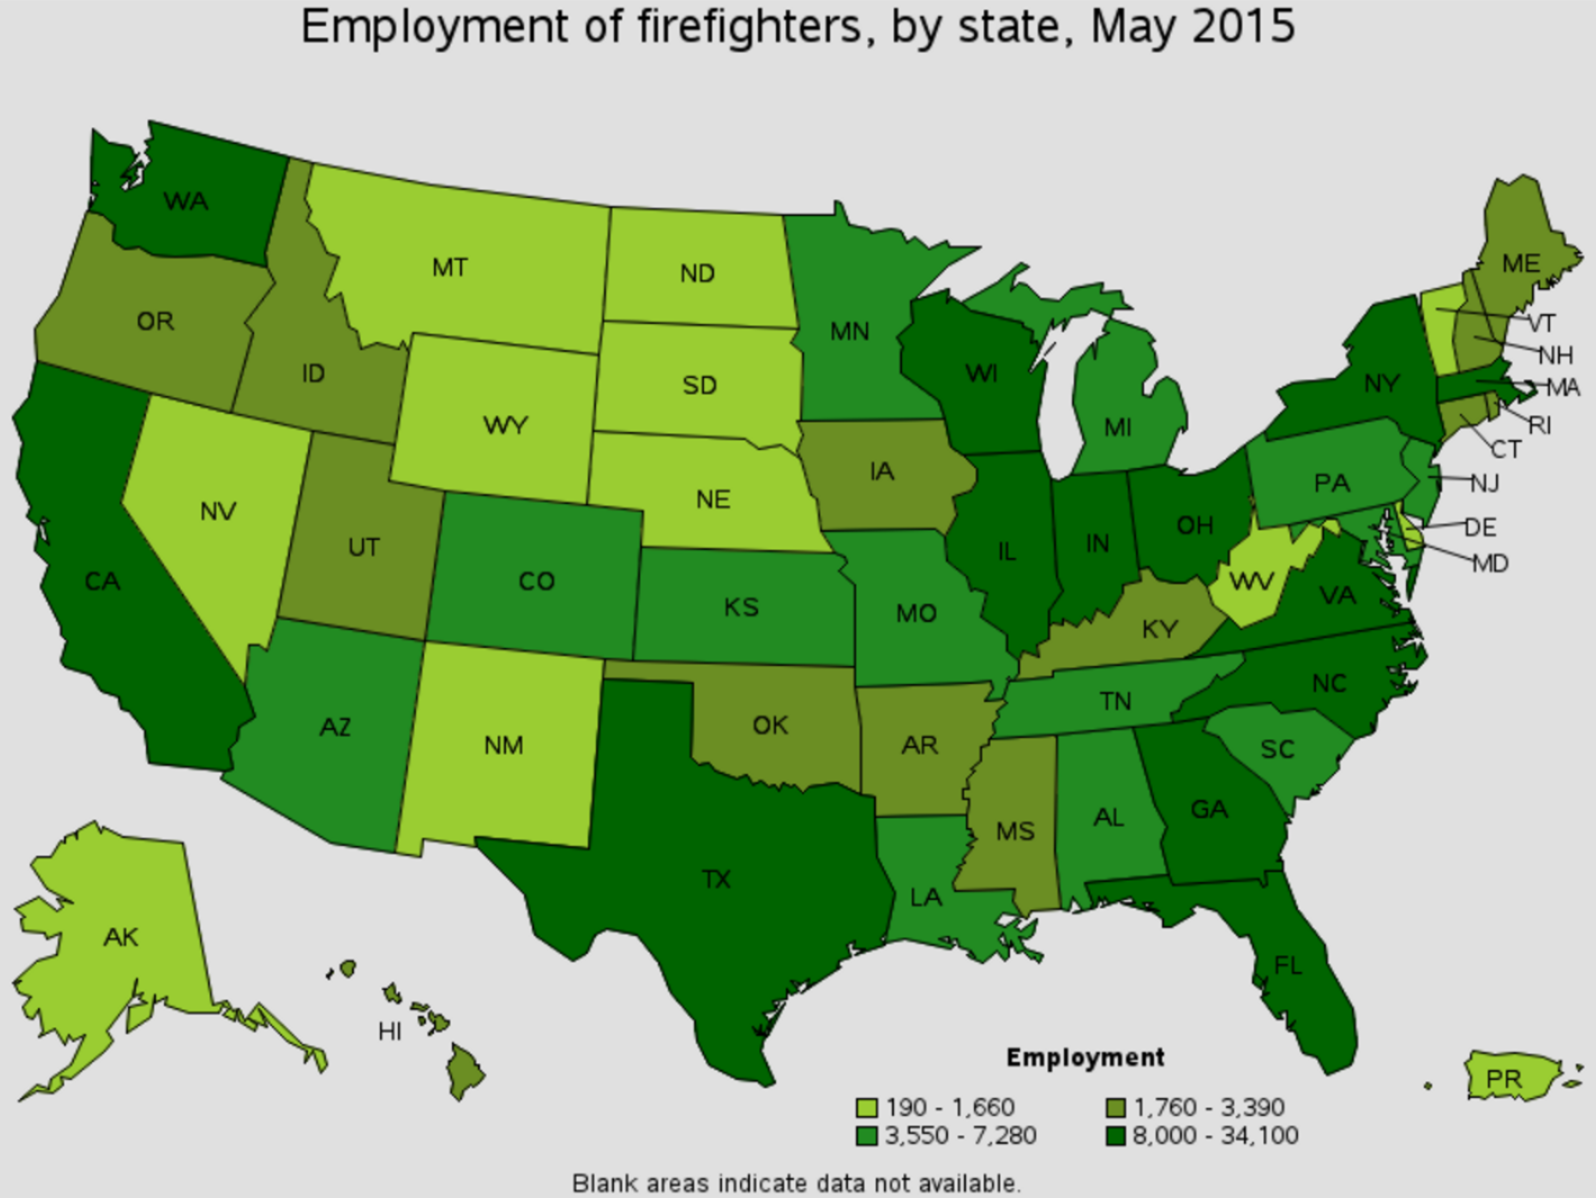 firefighter job outlook by state Wimauma Florida